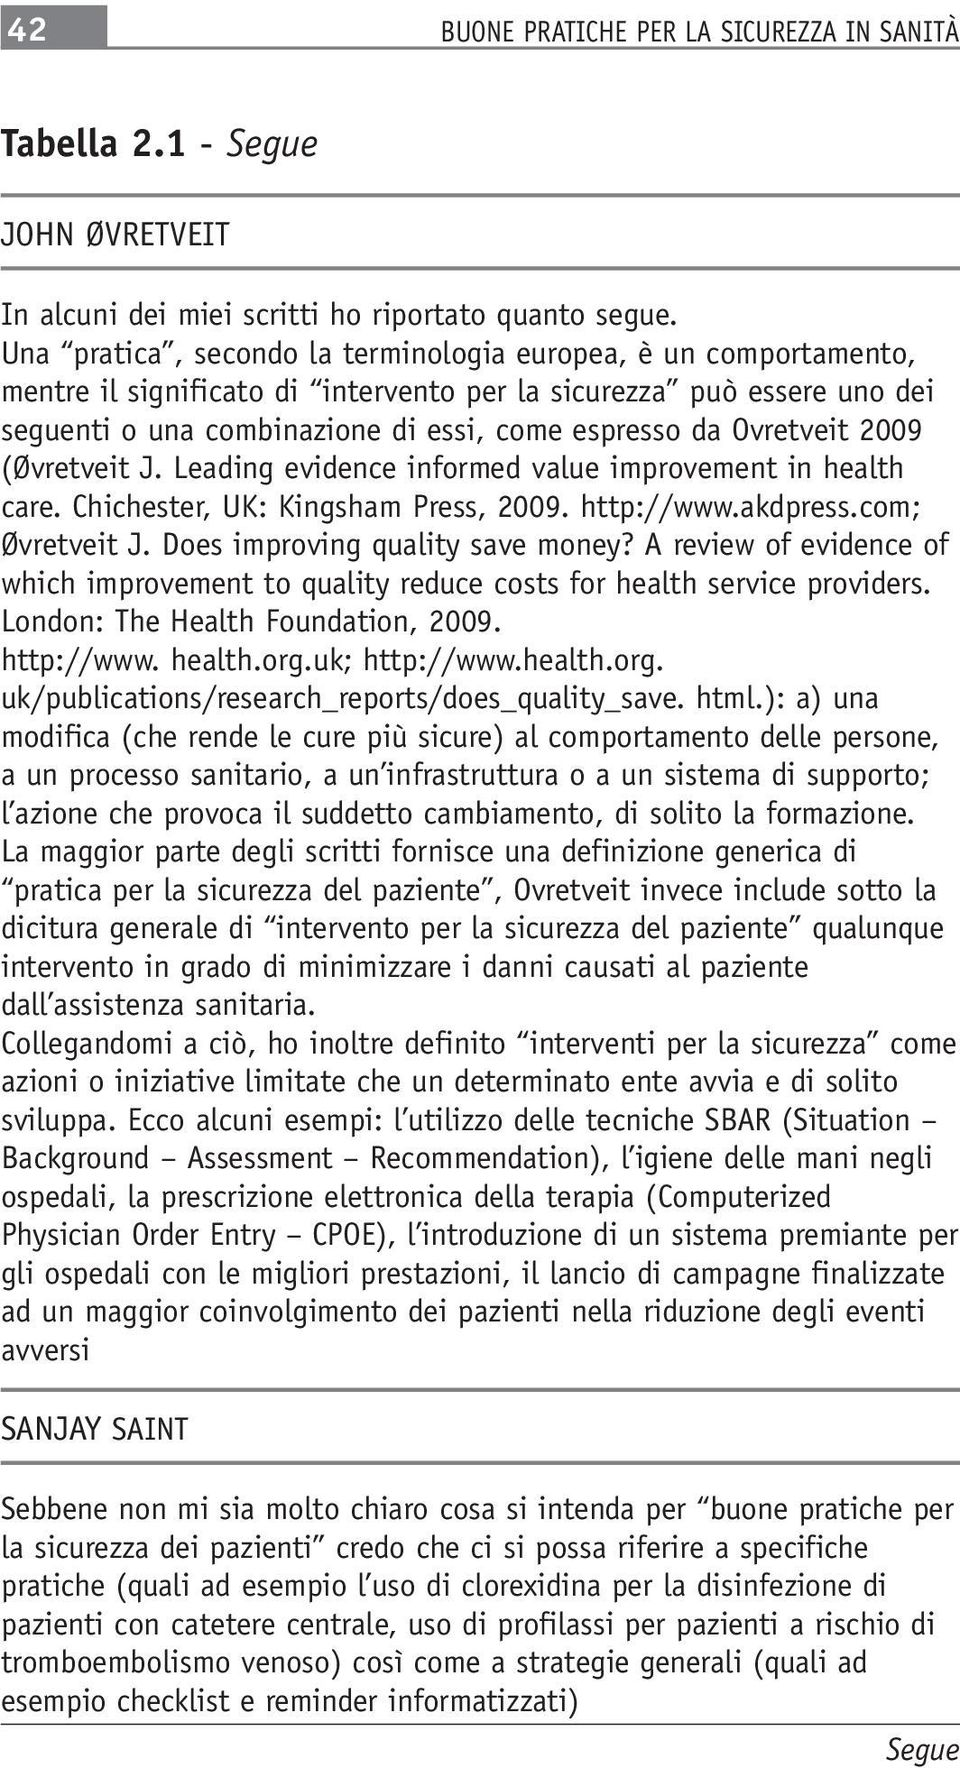 Ovretveit 2009 (Øvretveit J. Leading evidence informed value improvement in health care. Chichester, UK: Kingsham Press, 2009. http://www.akdpress.com; Øvretveit J. Does improving quality save money?